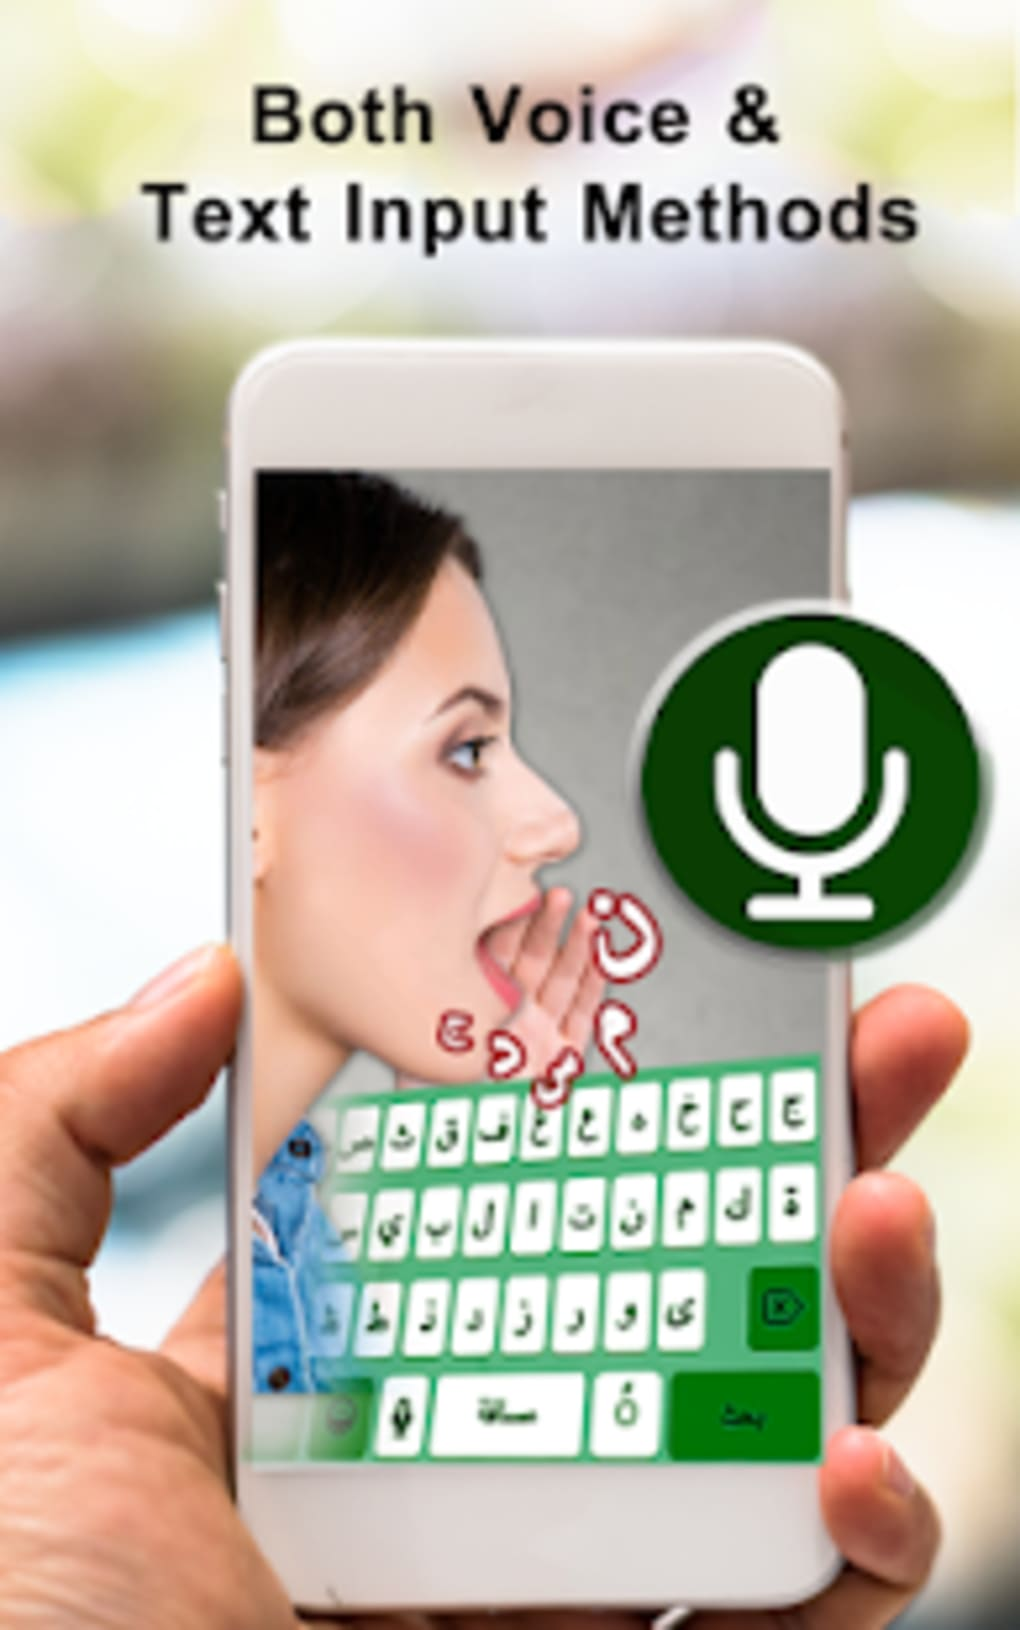 Arabic Voice typing keyboard- Speech to text app for Android